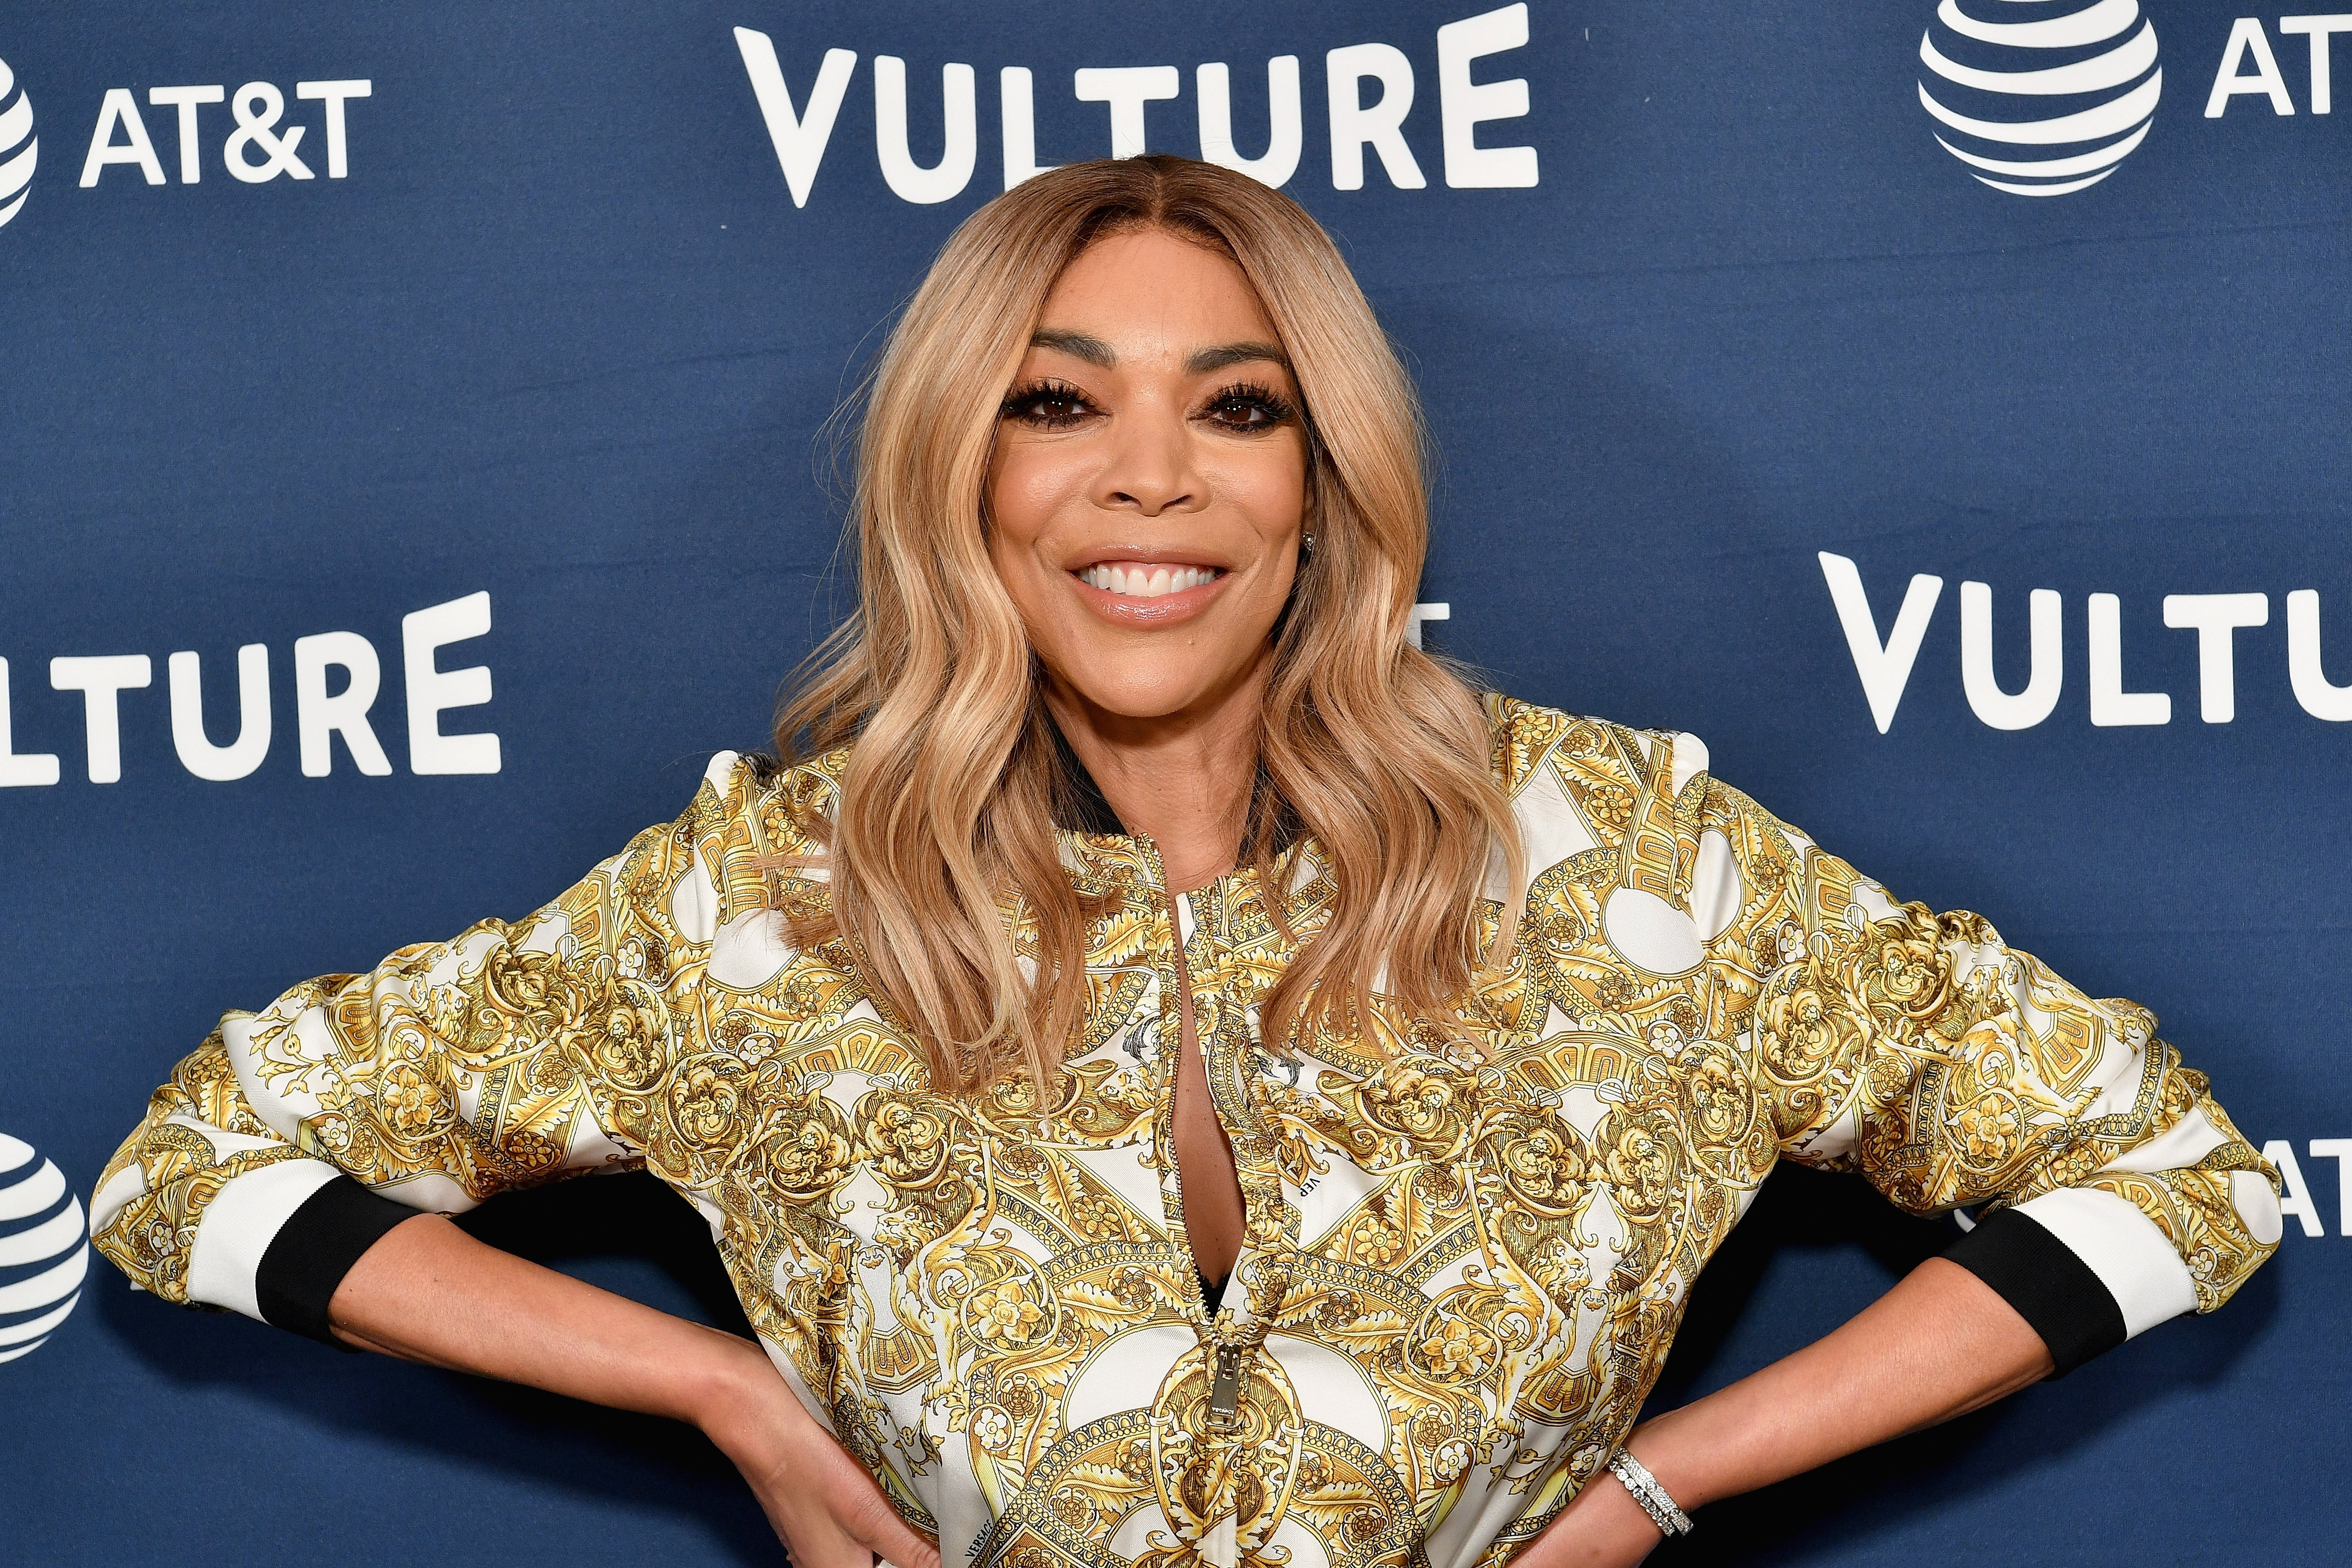 Wendy Williams at the Vulture Festival presented on May 19, 2018 in New York City. | Source: Getty Images